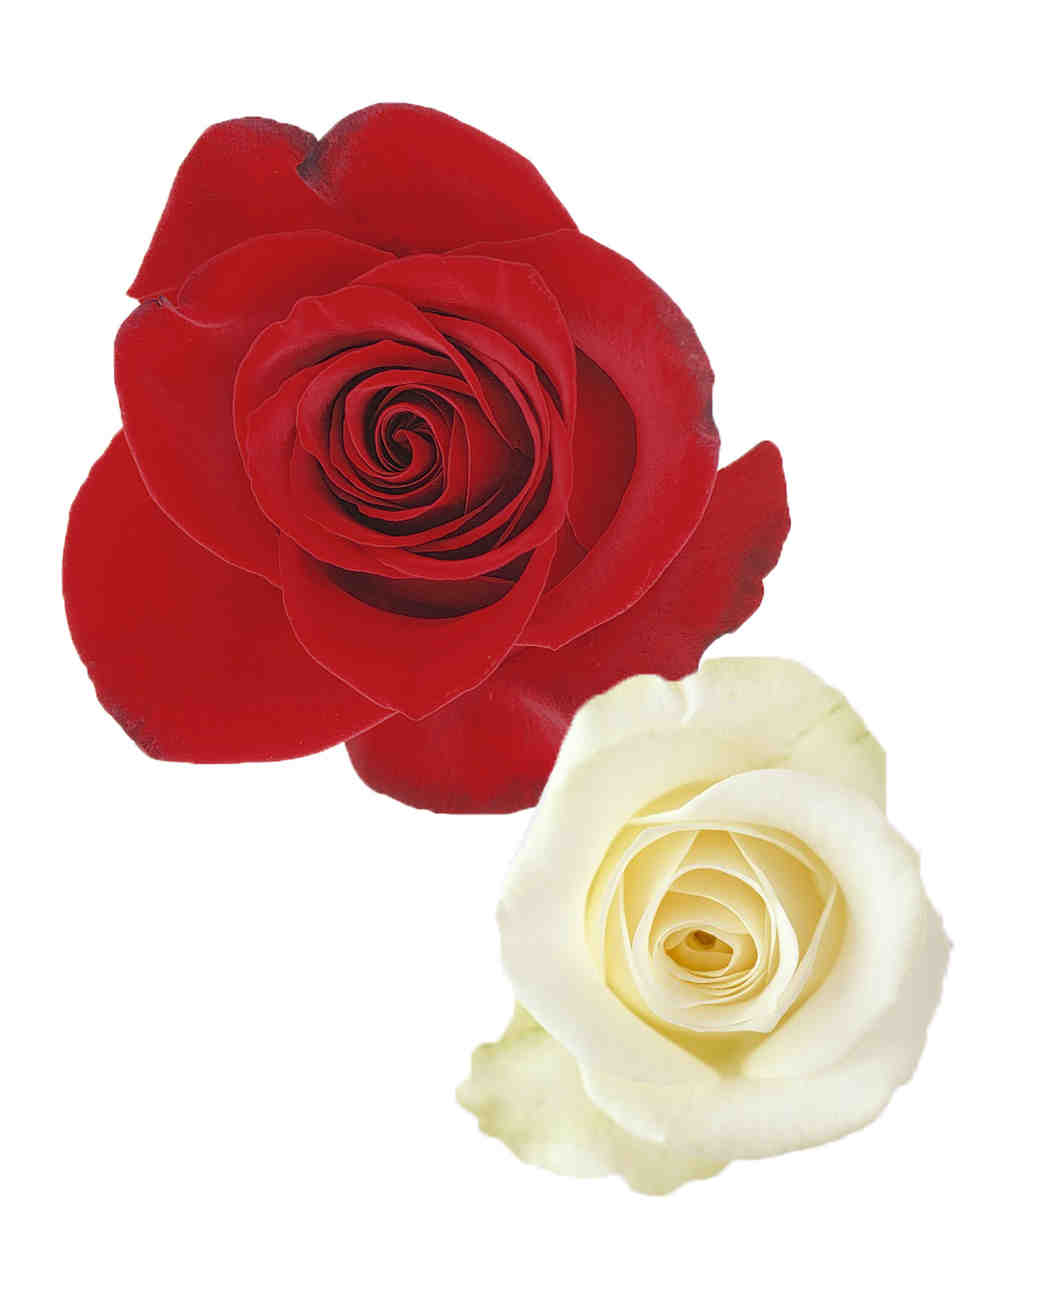 rose-color-meanings-red-white-a98432-0715.jpg